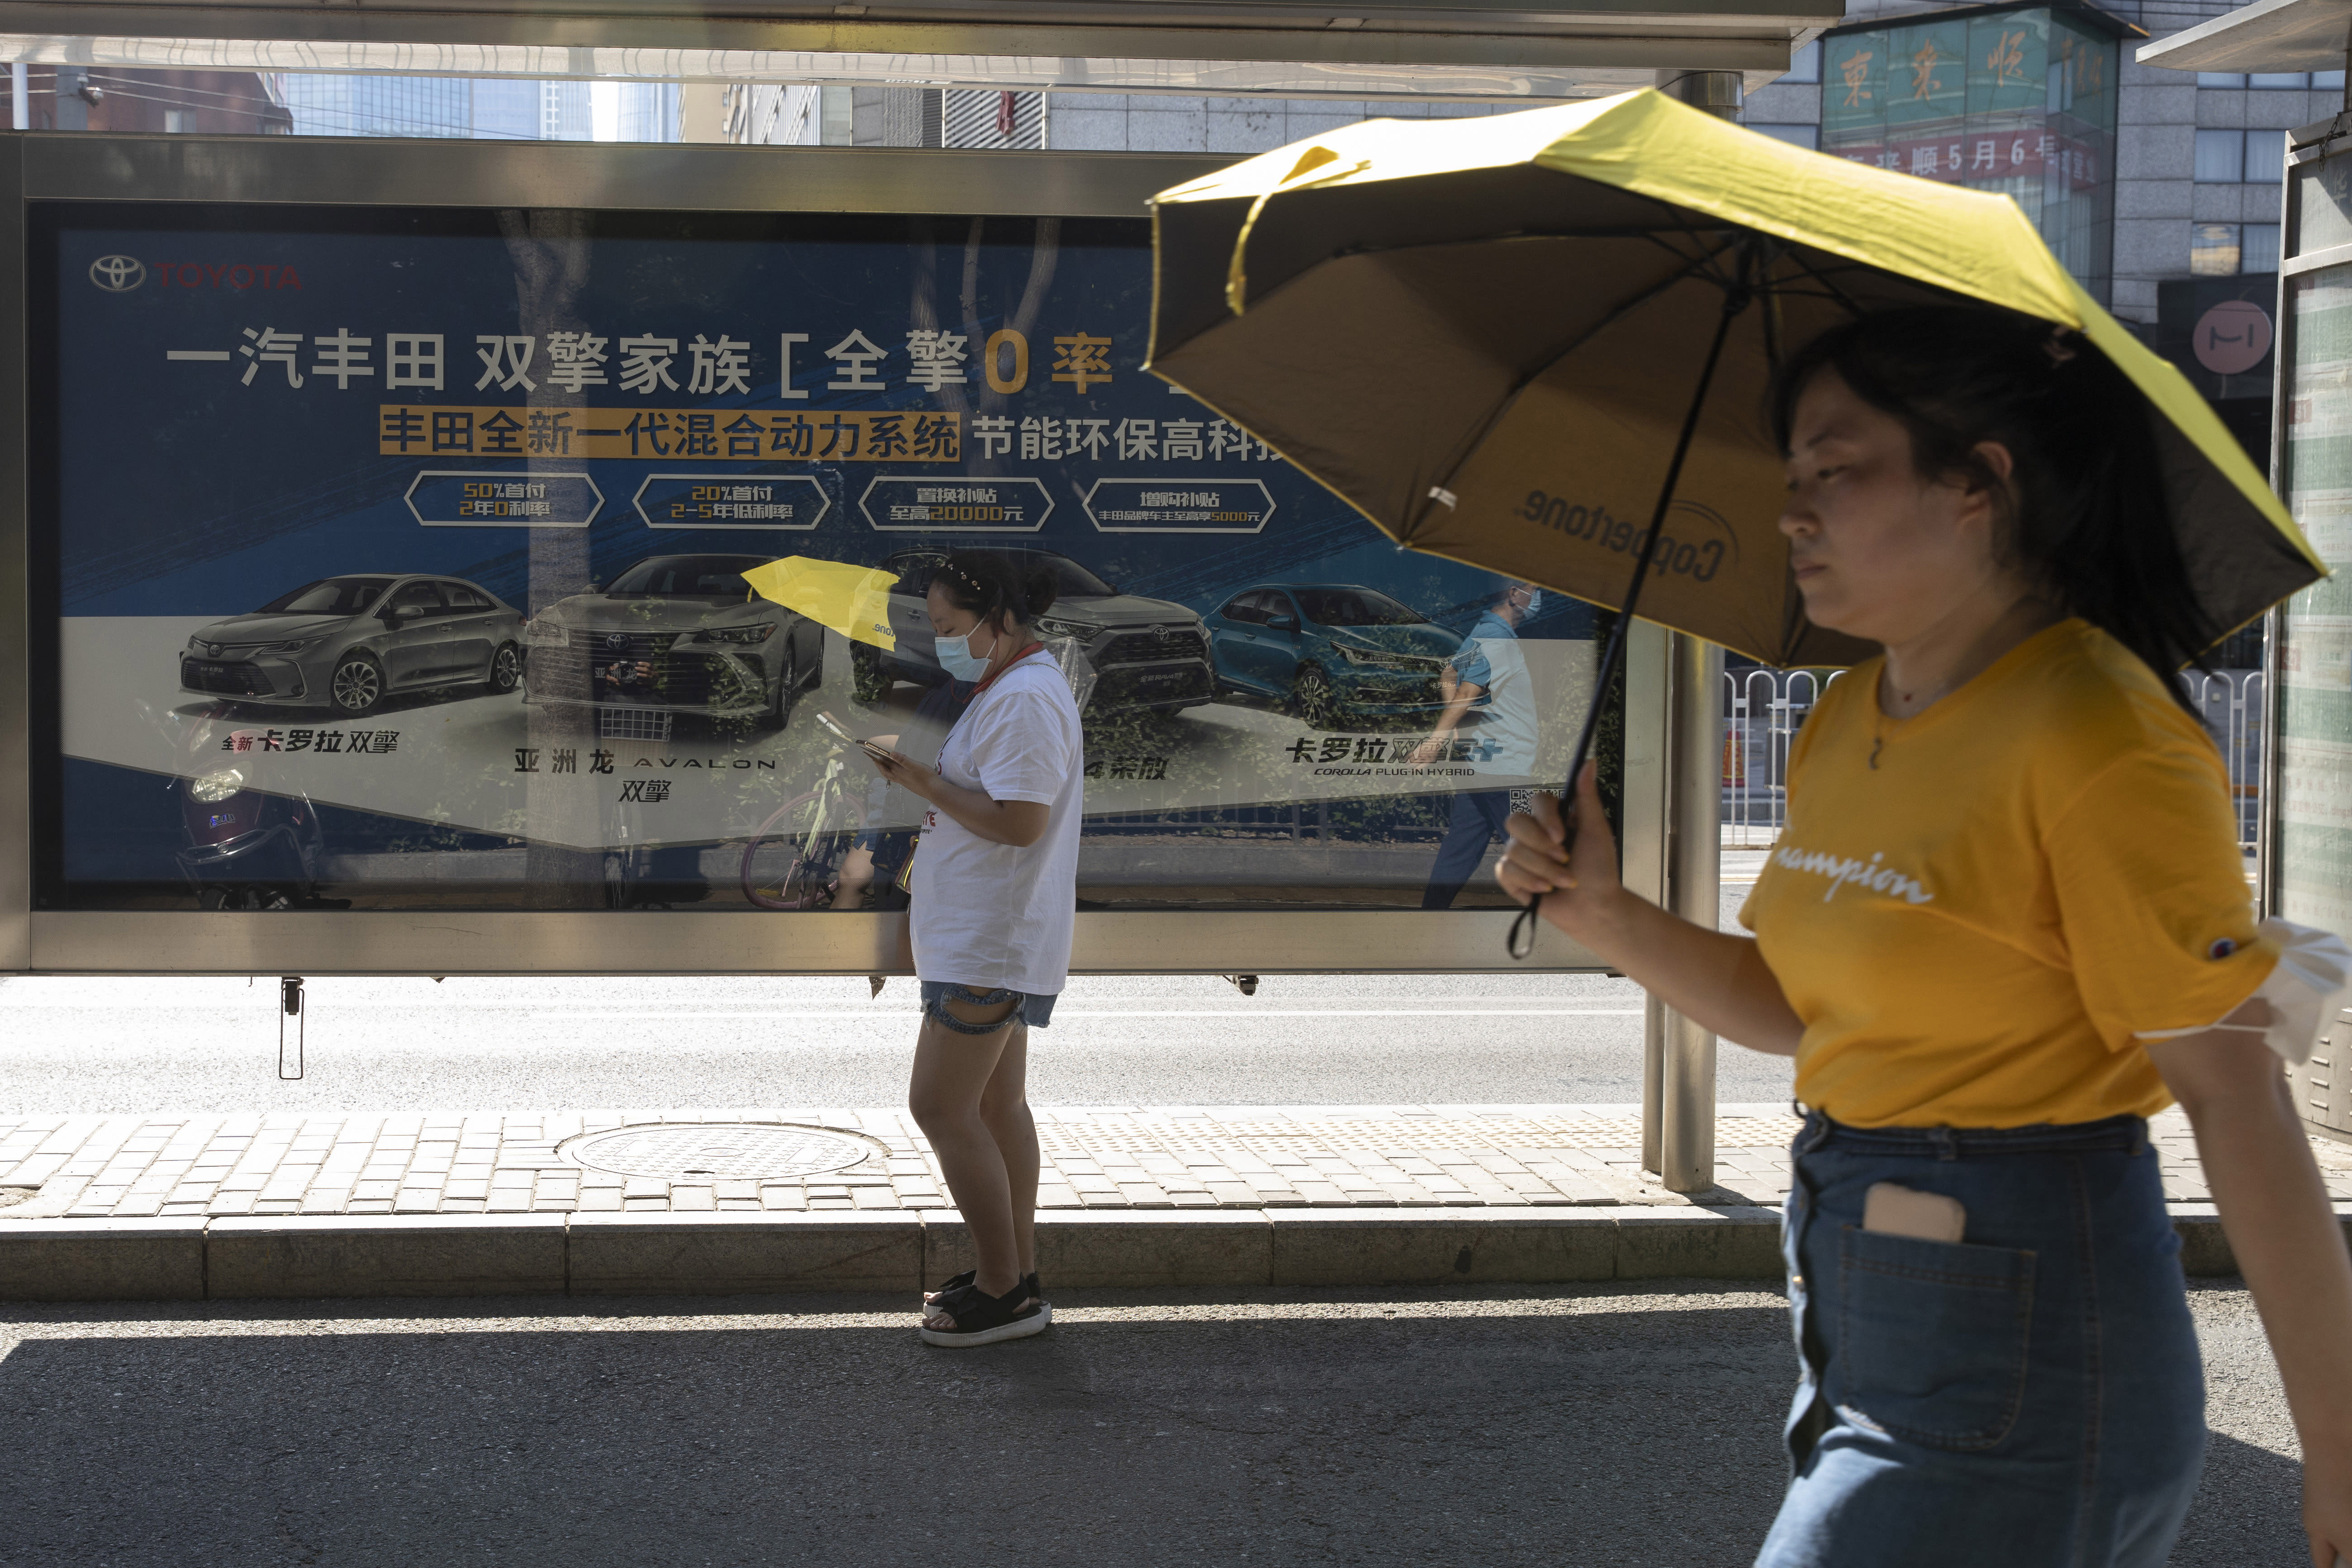 Residents pass by an advertisement for Hybrid cars from Toyota on the streets of Beijing on Tuesday, Aug. 4, 2020. China's auto sales rose by 16.4% in July over a year earlier to 2.1 million units in a sign of sustained recovery for the industry's biggest global market, an industry group said Tuesday. (AP Photo/Ng Han Guan)